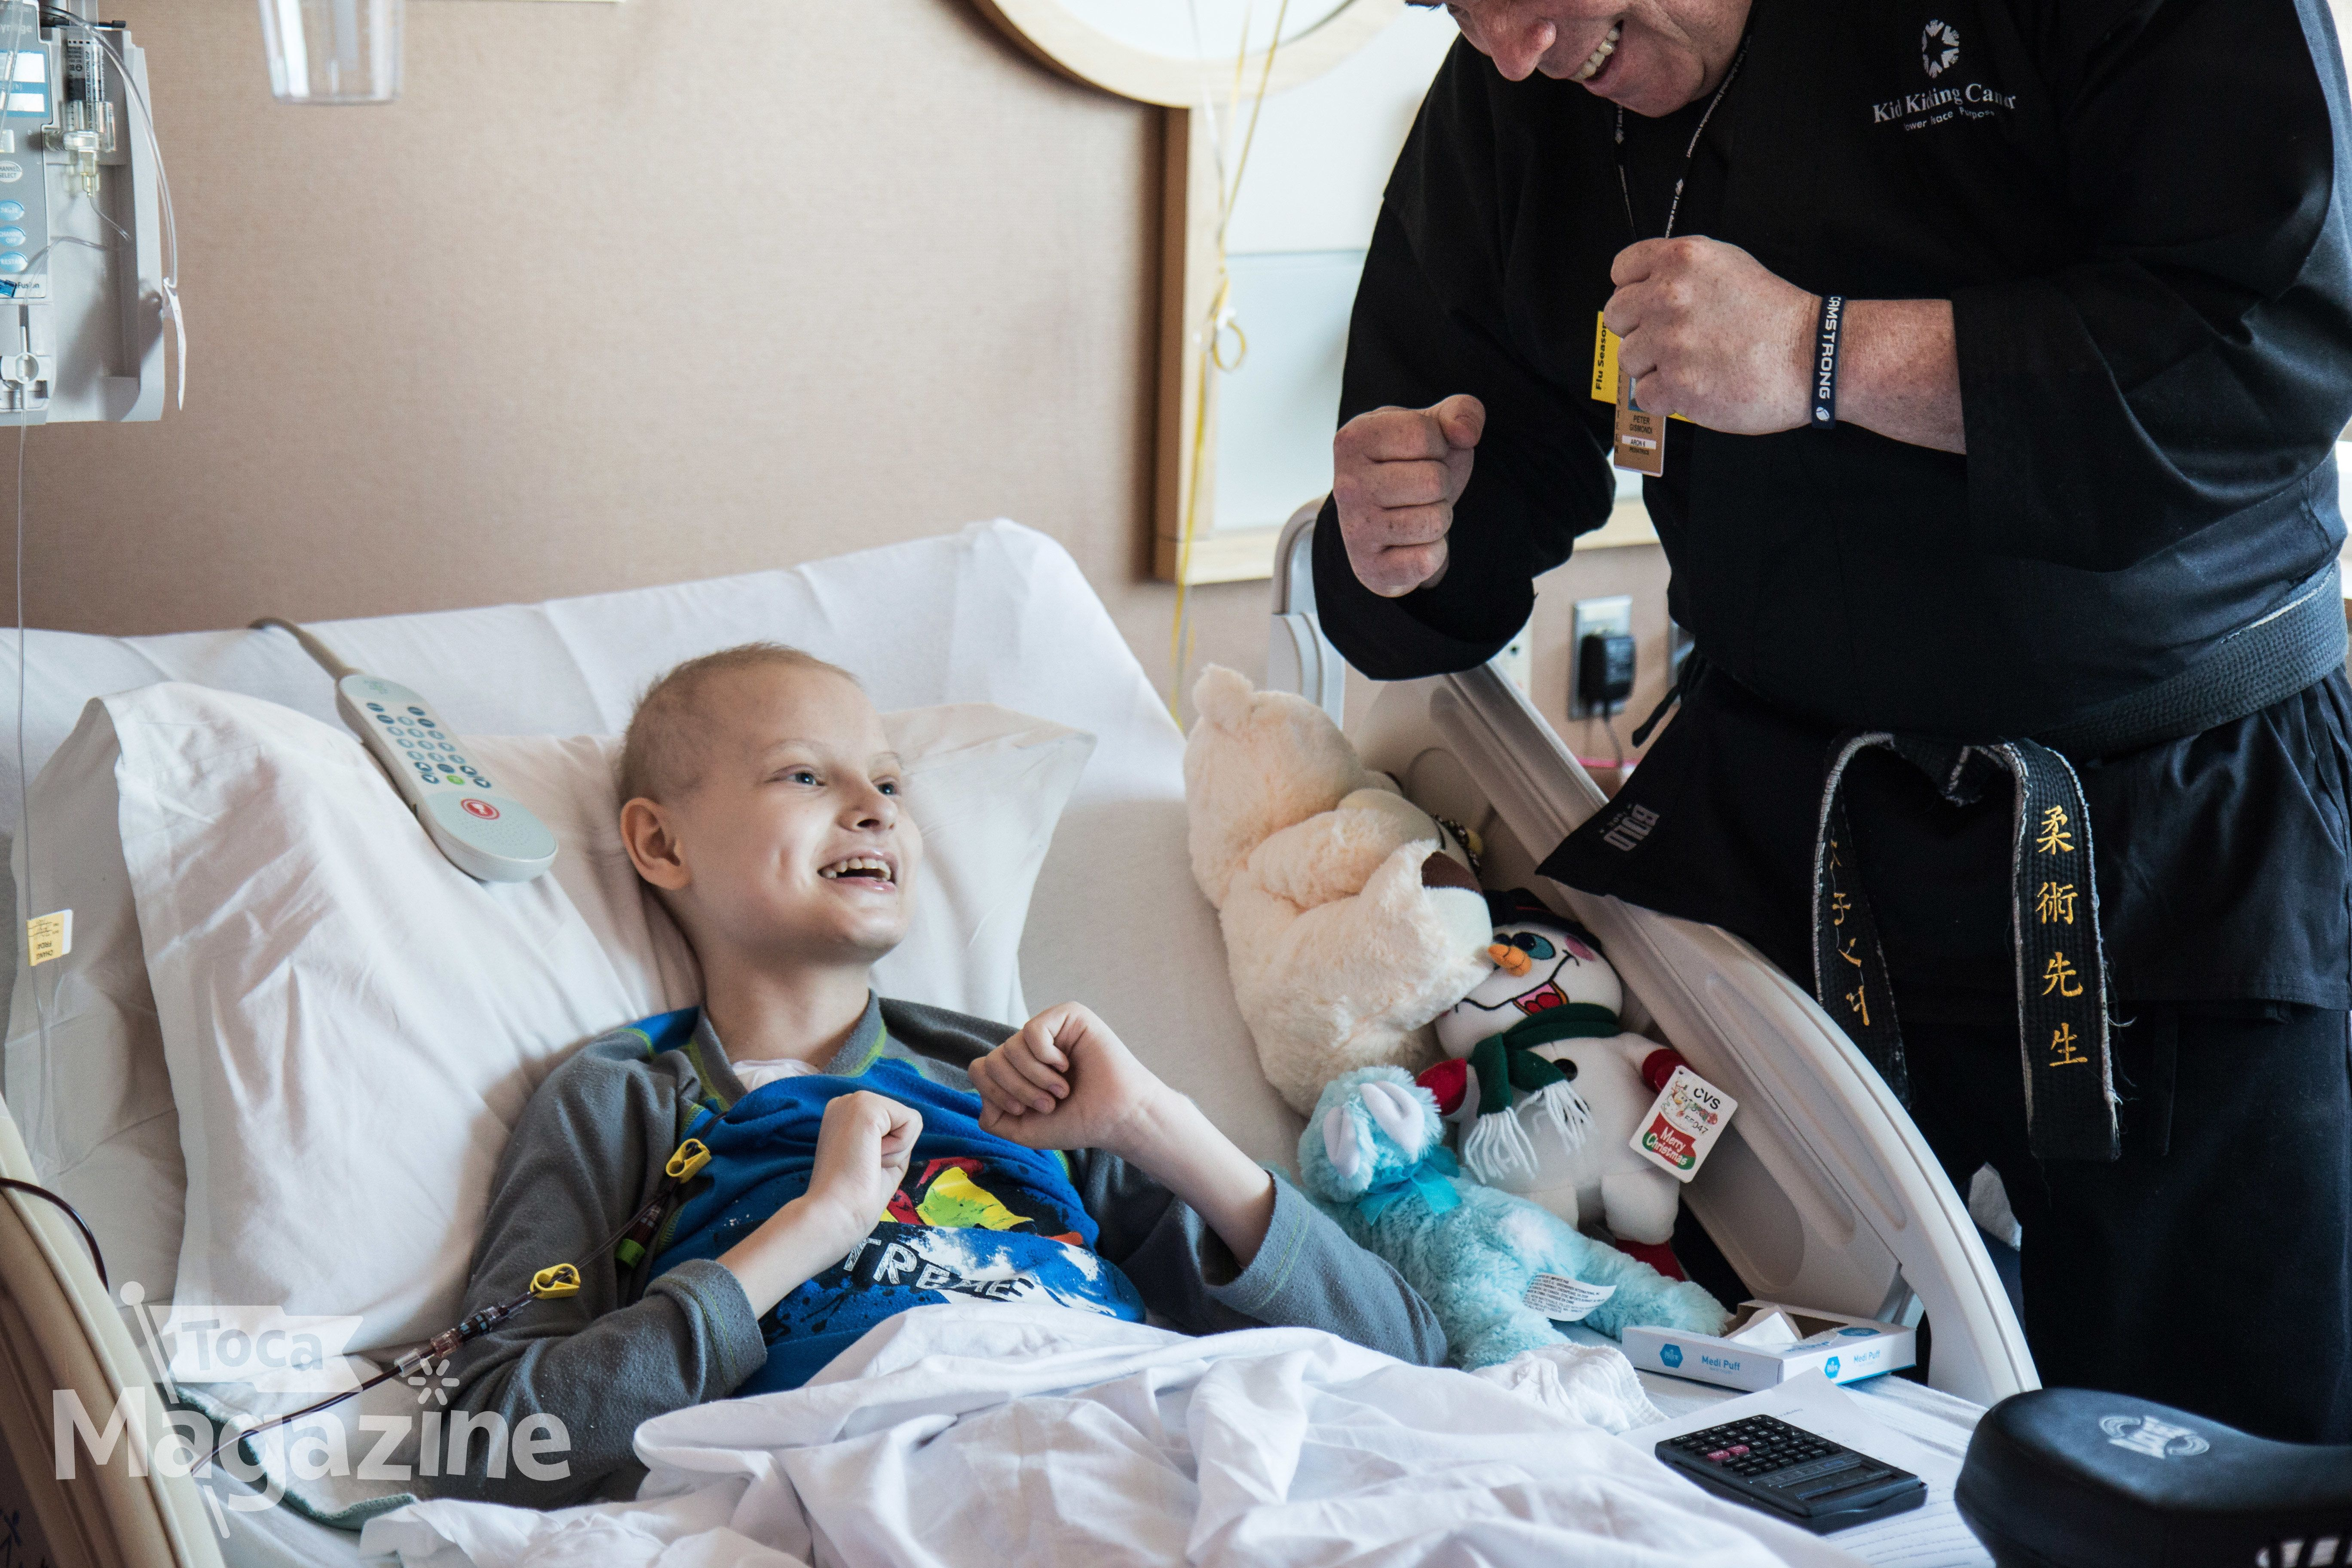 """""""Although the hospital can be filled with unfamiliar and sometimes scary and upsetting situations, it's a place where the business of childhood continues,"""" she said."""